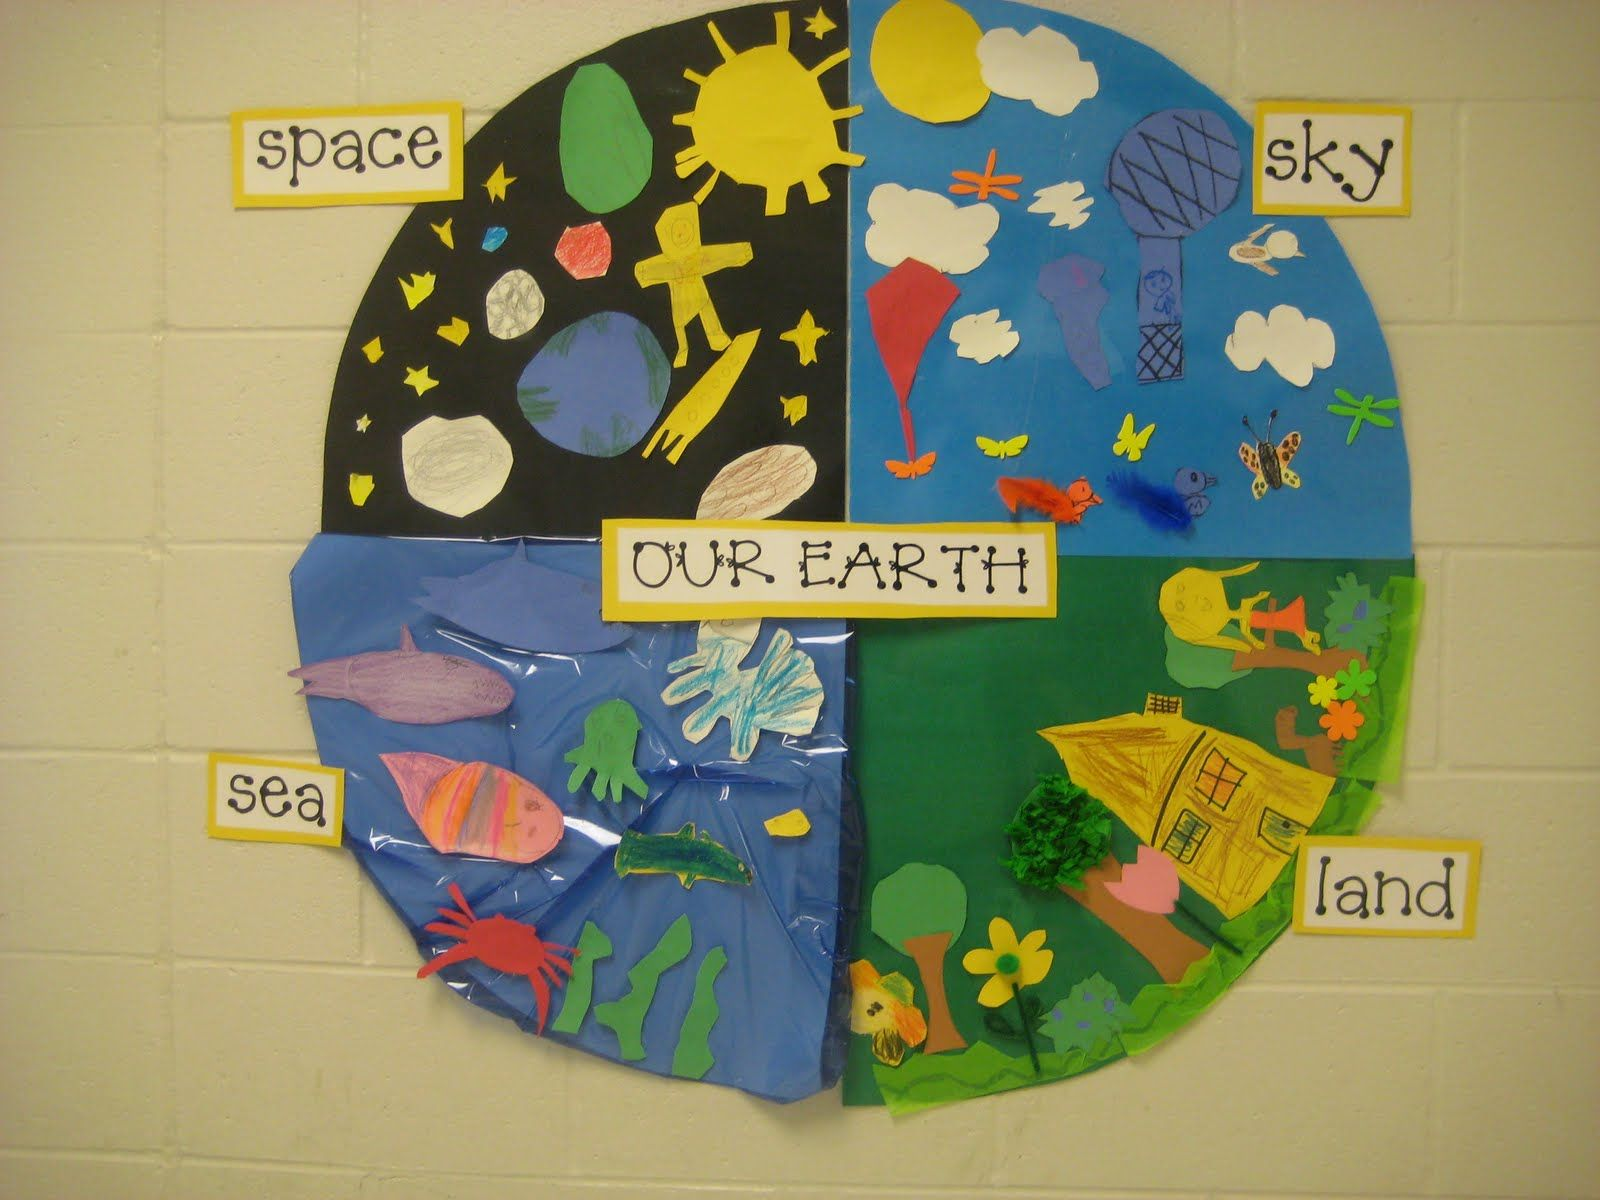 ocean theme worksheets kinder garden earth week activities earth day pinterest gardens. Black Bedroom Furniture Sets. Home Design Ideas